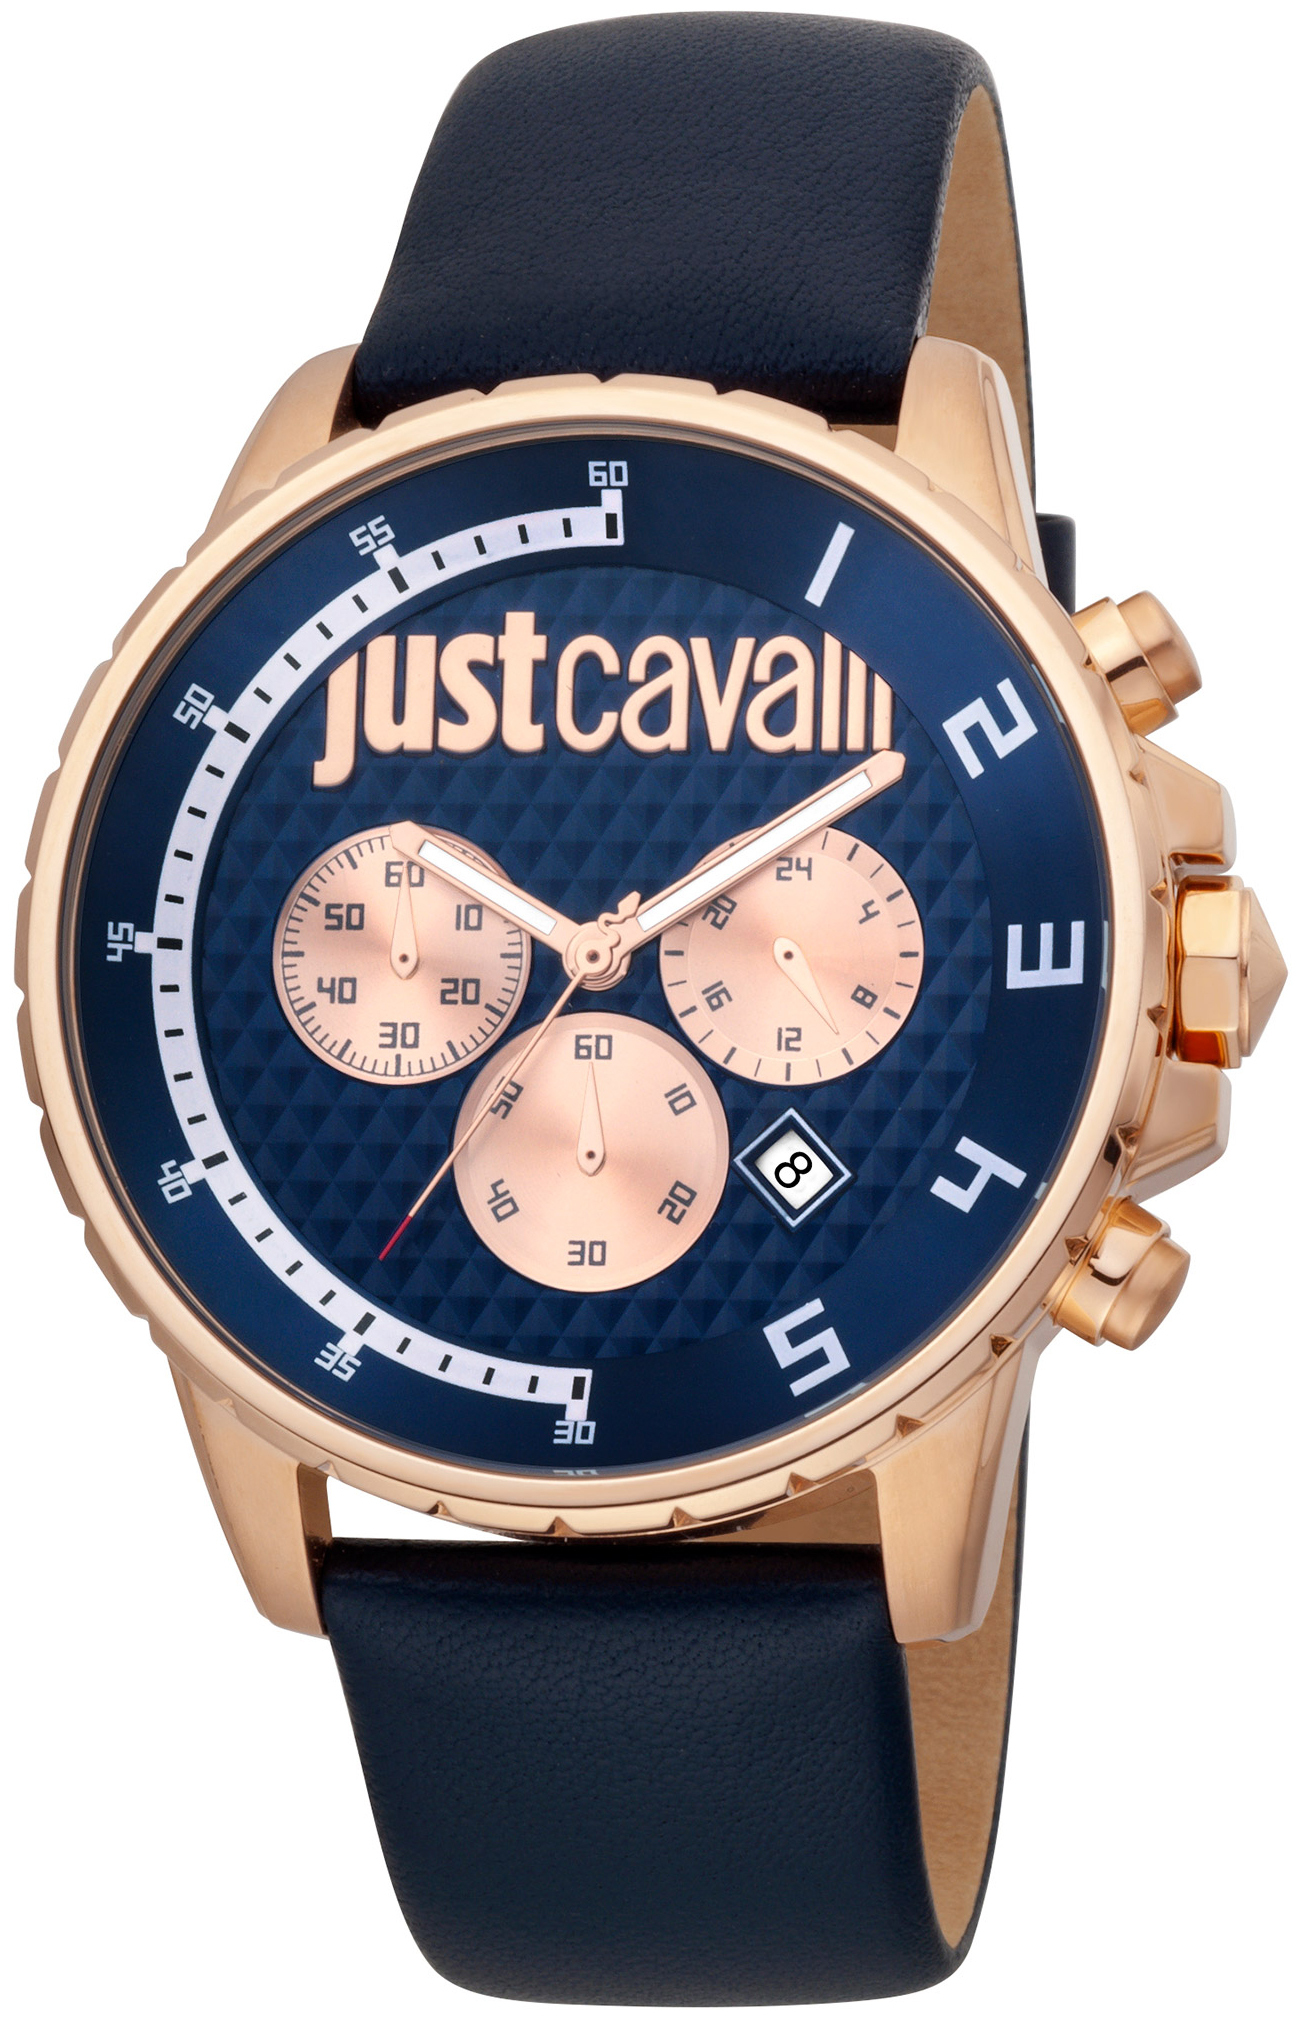 Just Cavalli 99999 Herreklokke JC1G063L0235 Blå/Lær Ø44 mm - Just Cavalli